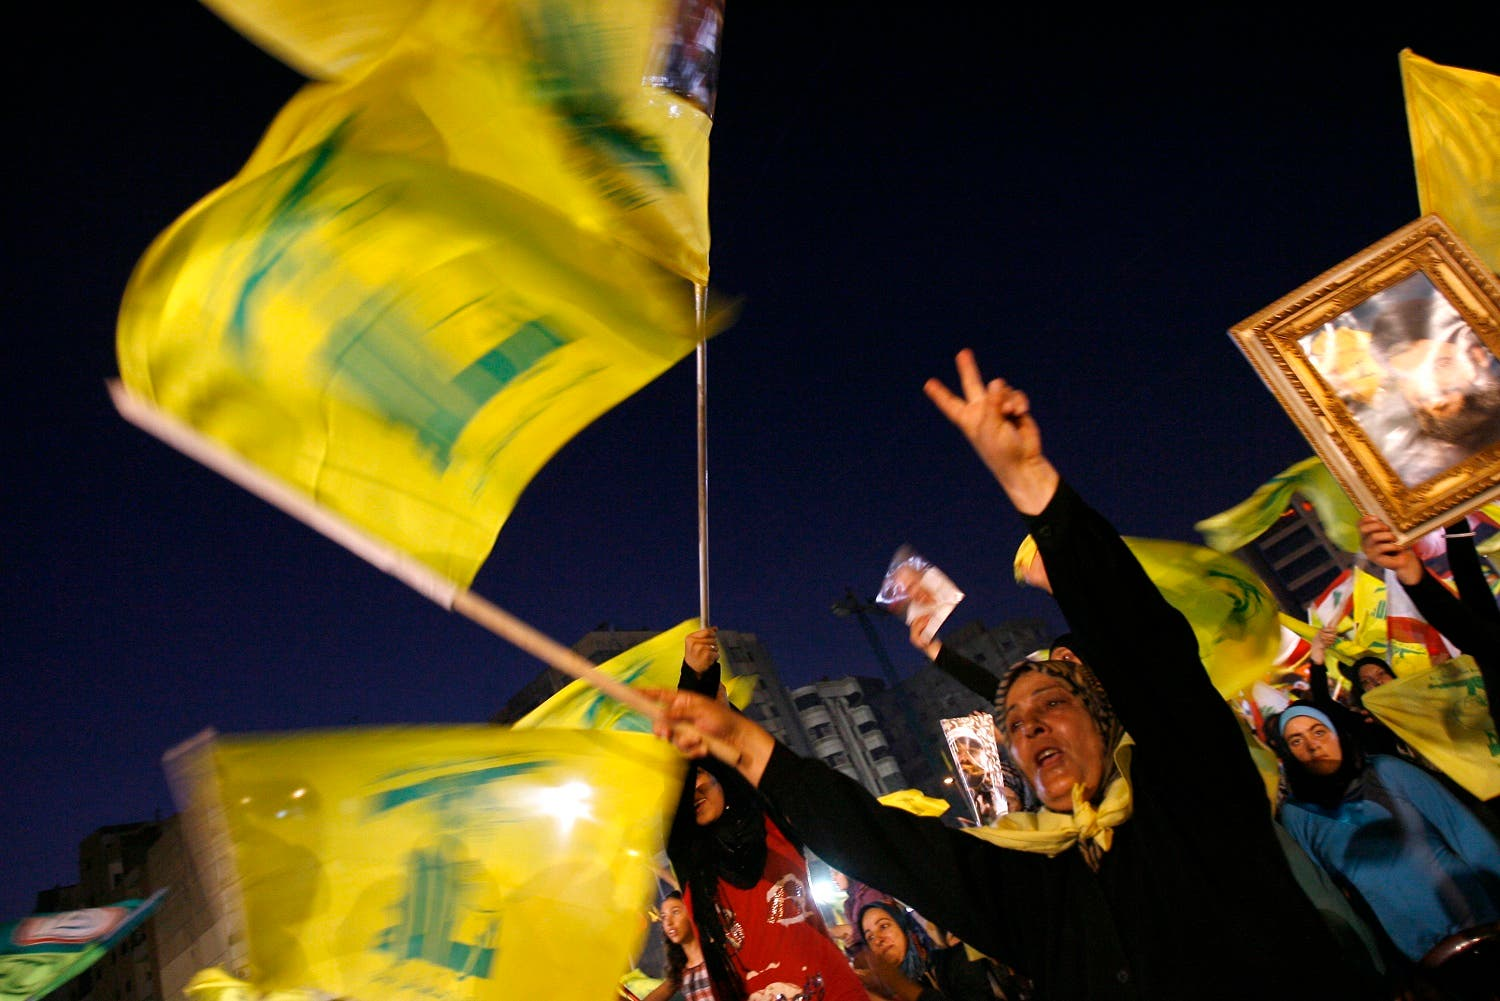 Analysts highlighted how the war sealed Hezbollah's dominance as a political-military force in the county at the expense of the nation at large. (File photo: Reuters)